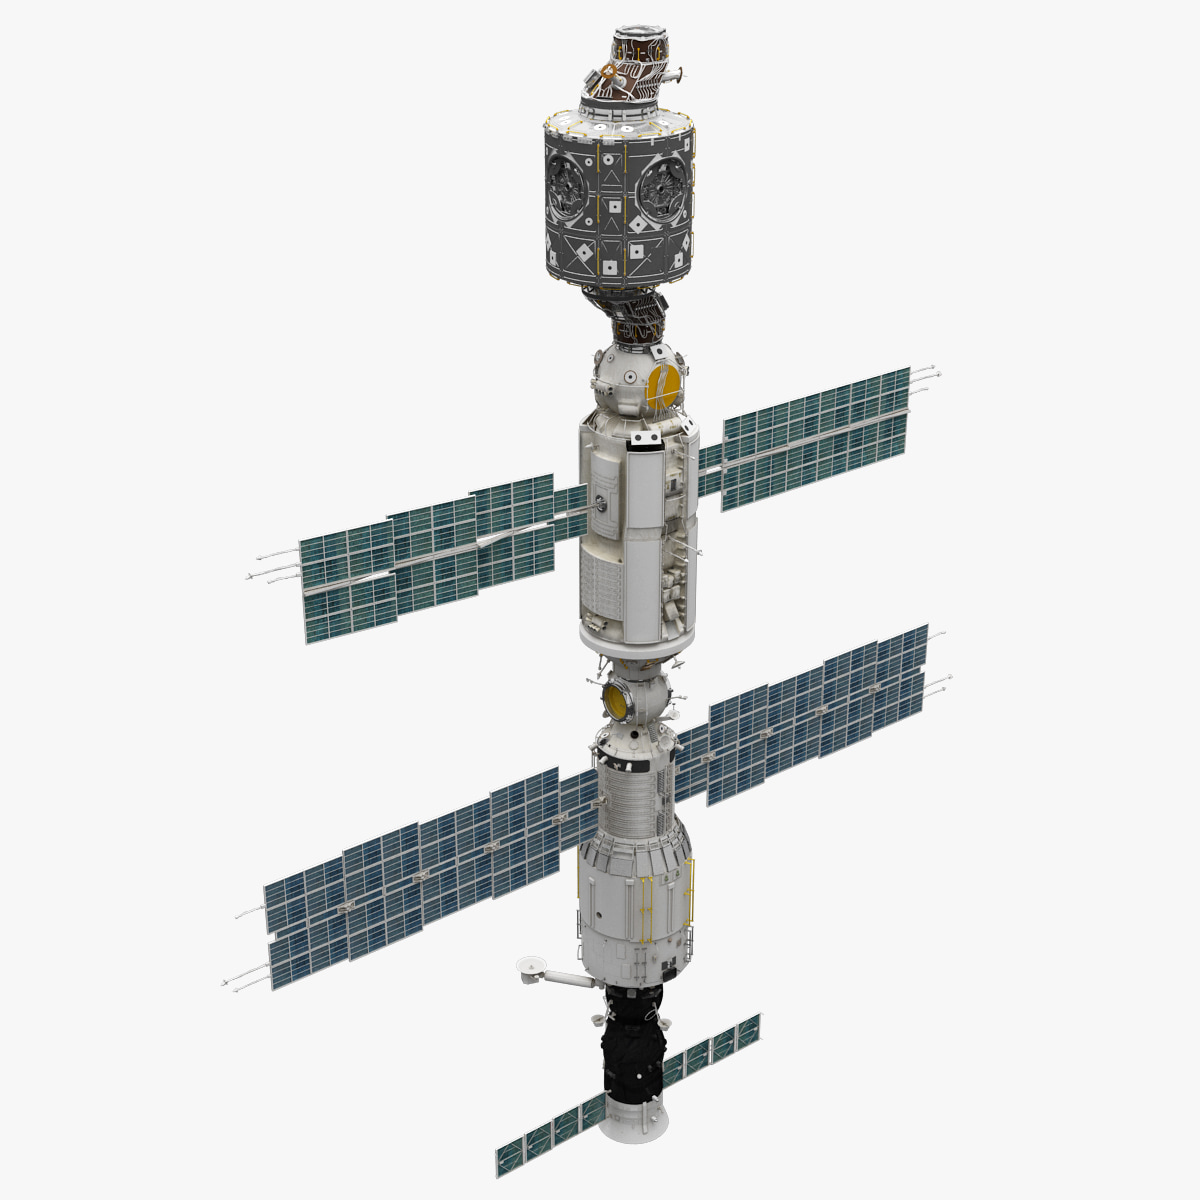 International_Space_Station_ISS_2000_0002.jpg